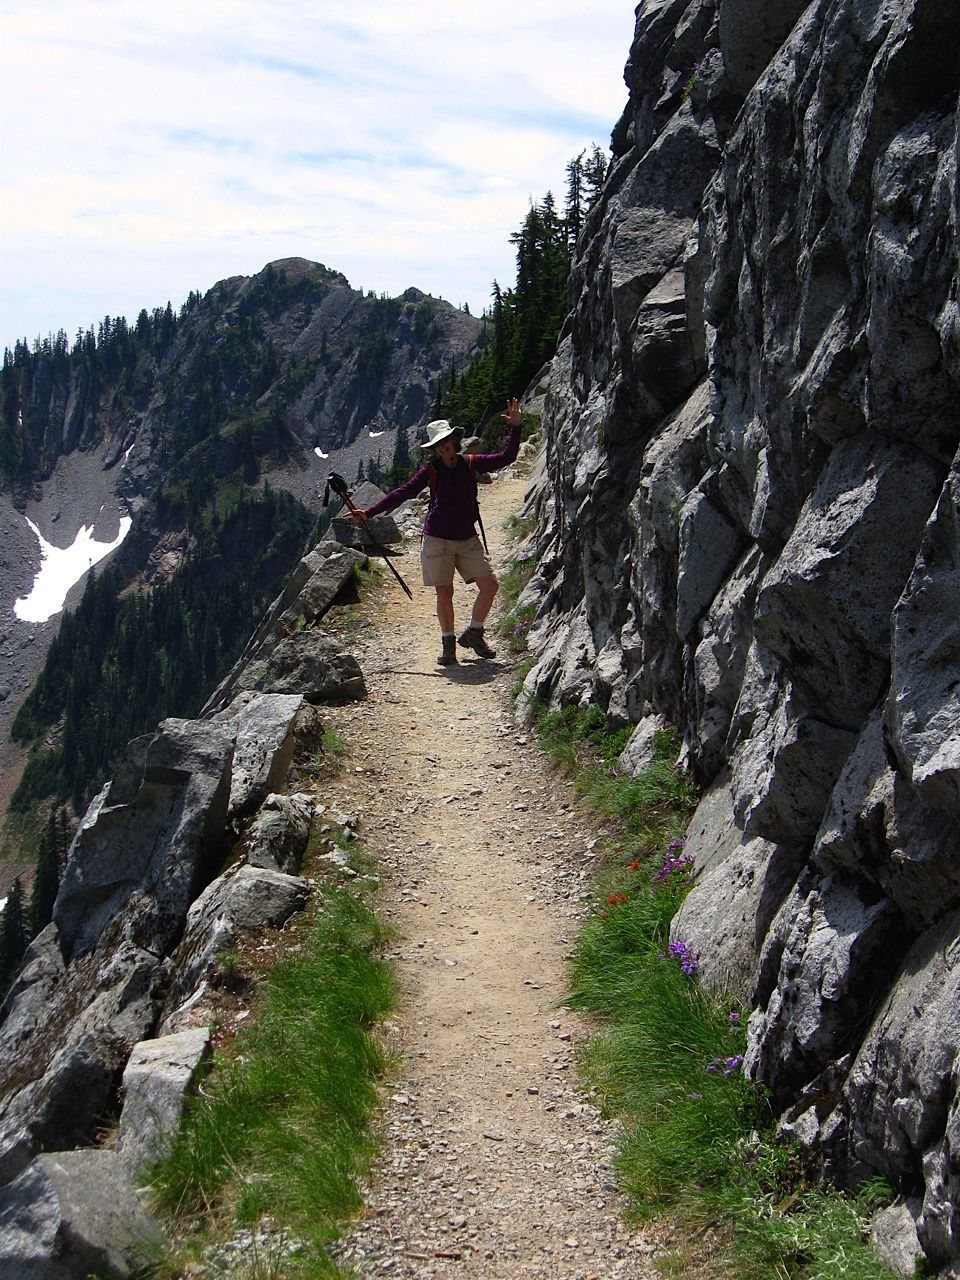 Taking on a section of the Pacific Crest Trail near